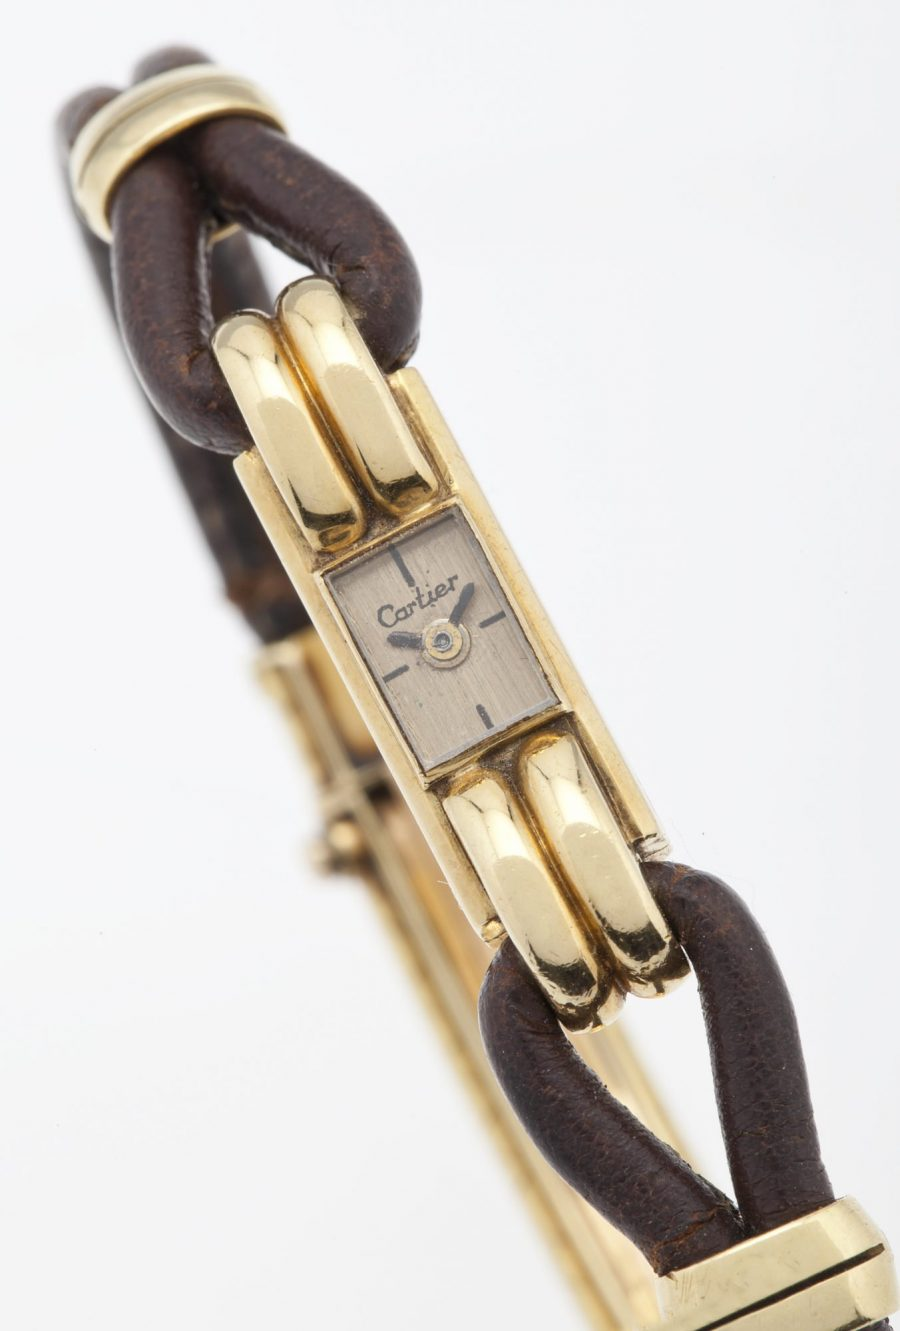 Cartier Retro minature ladies watch